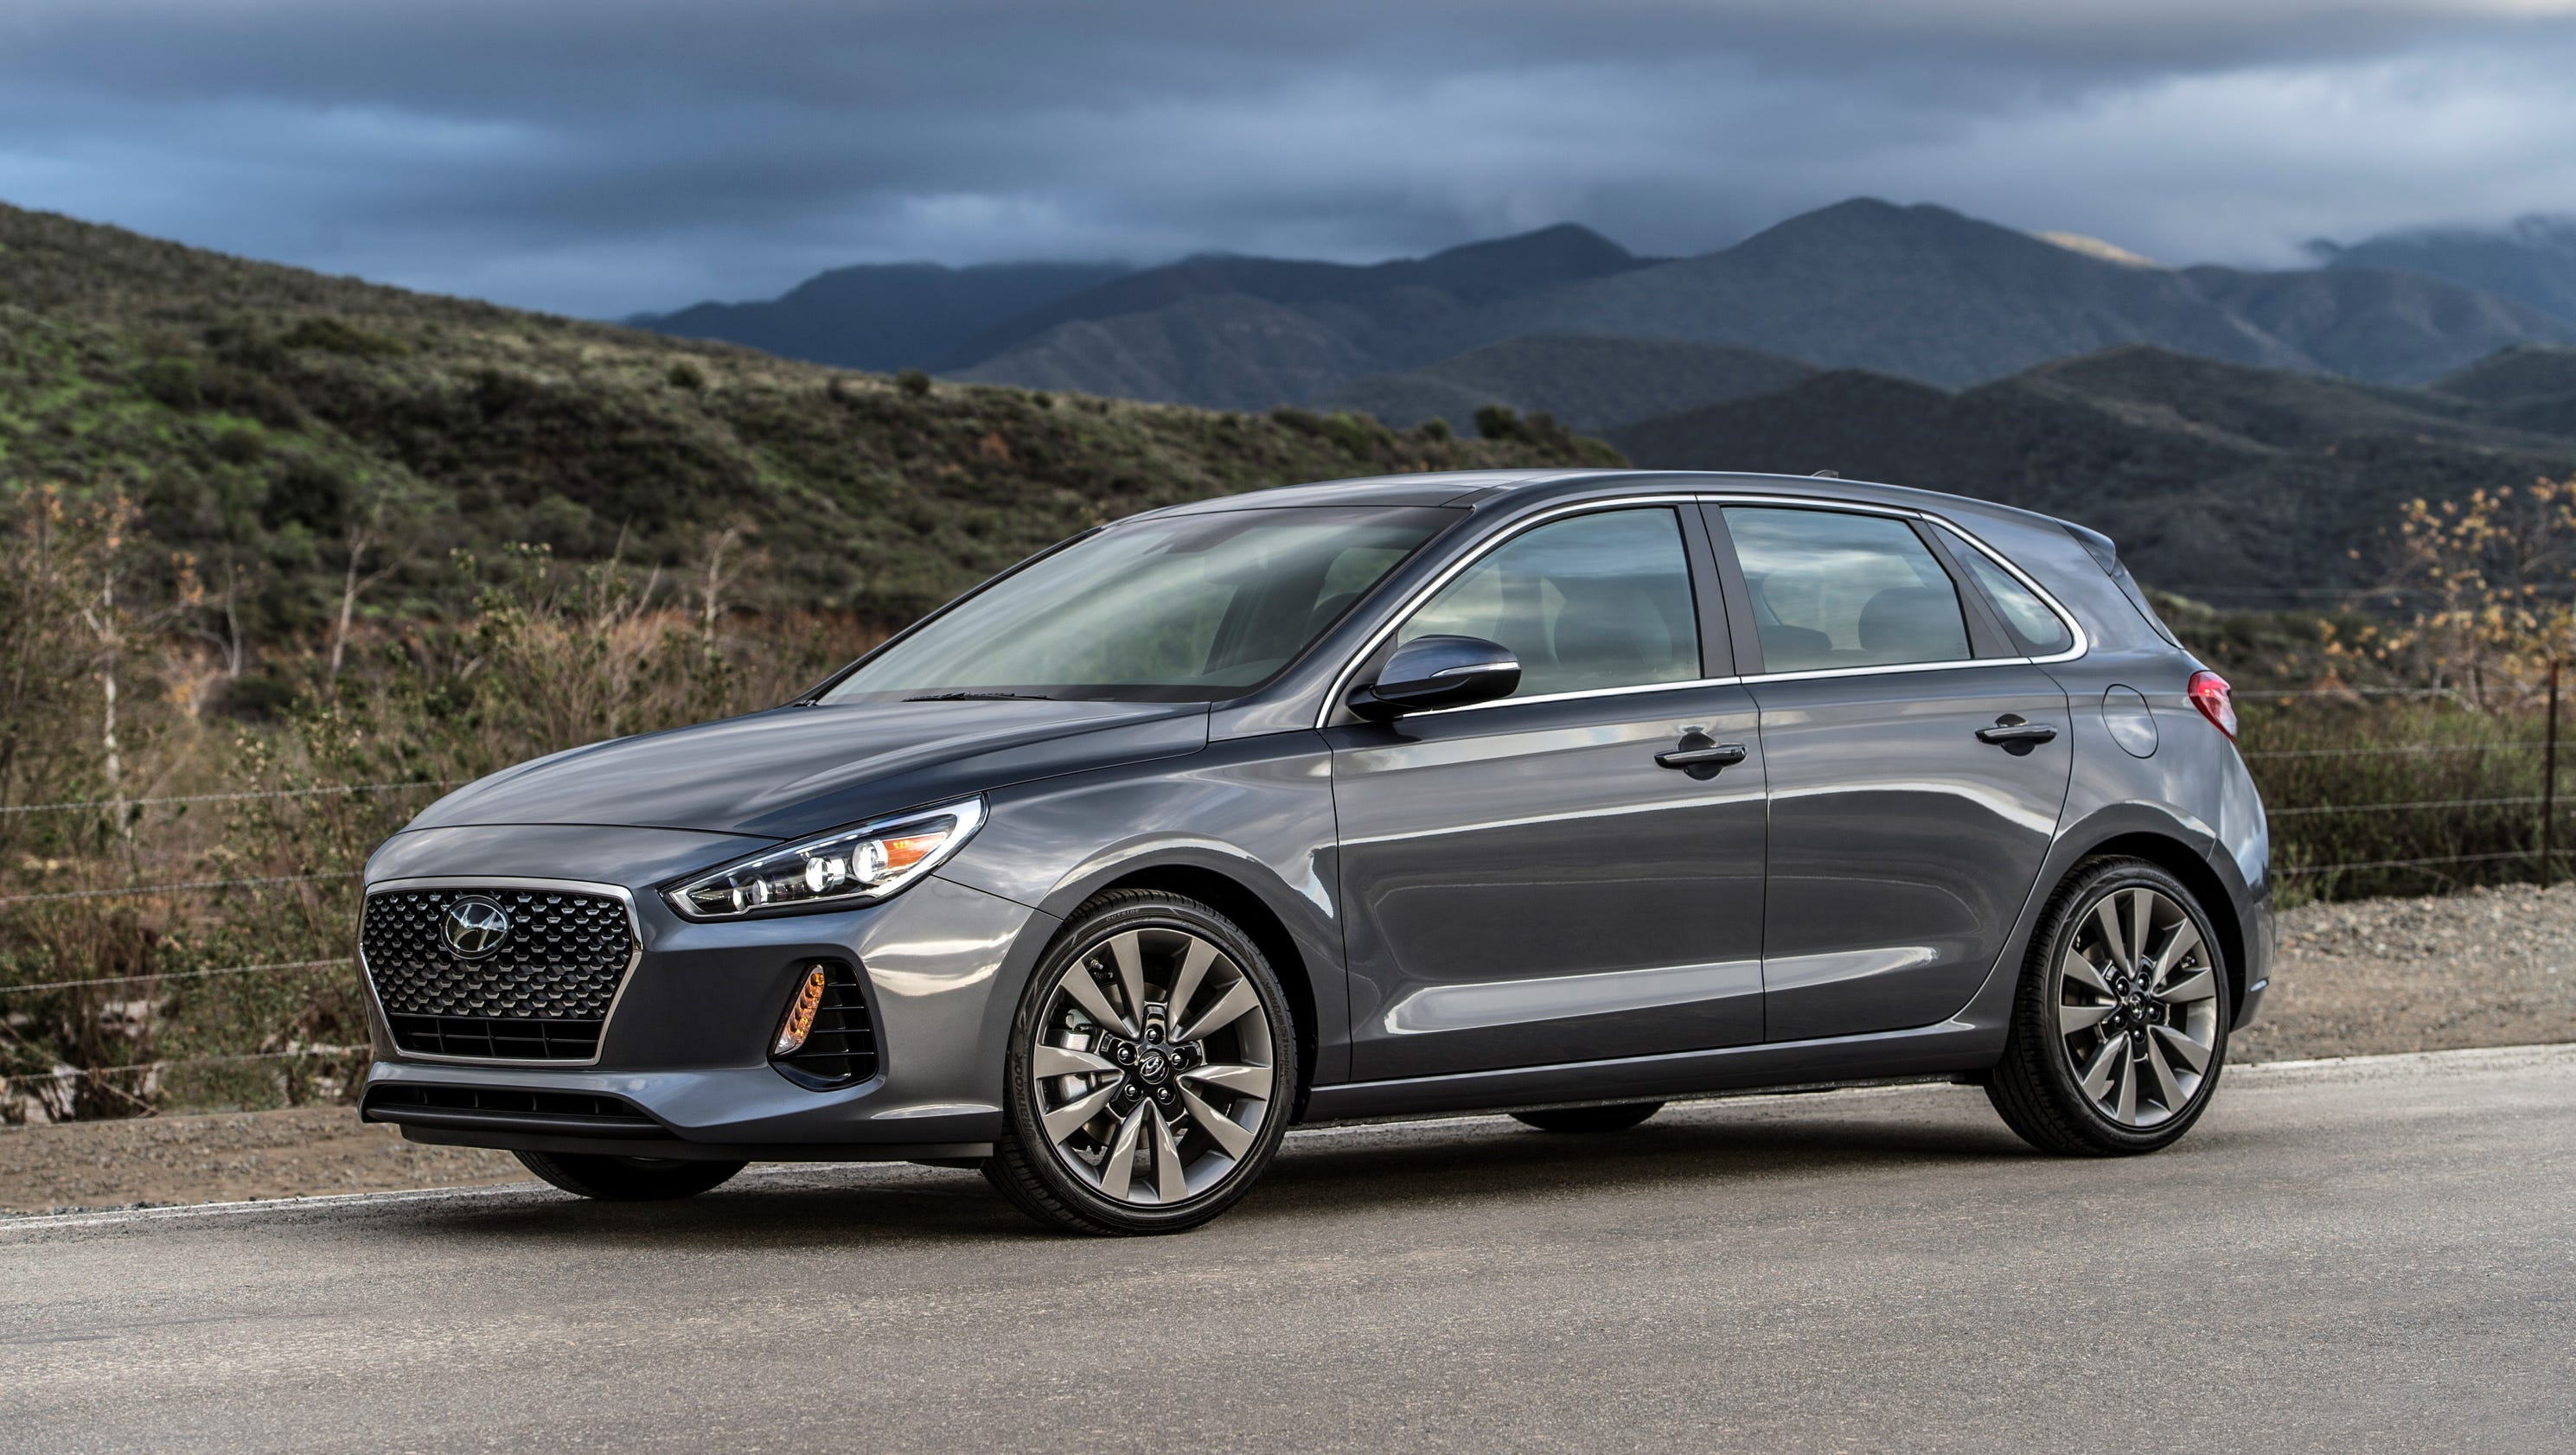 chicago auto show hyundai reveals elantra gt hatchback. Black Bedroom Furniture Sets. Home Design Ideas